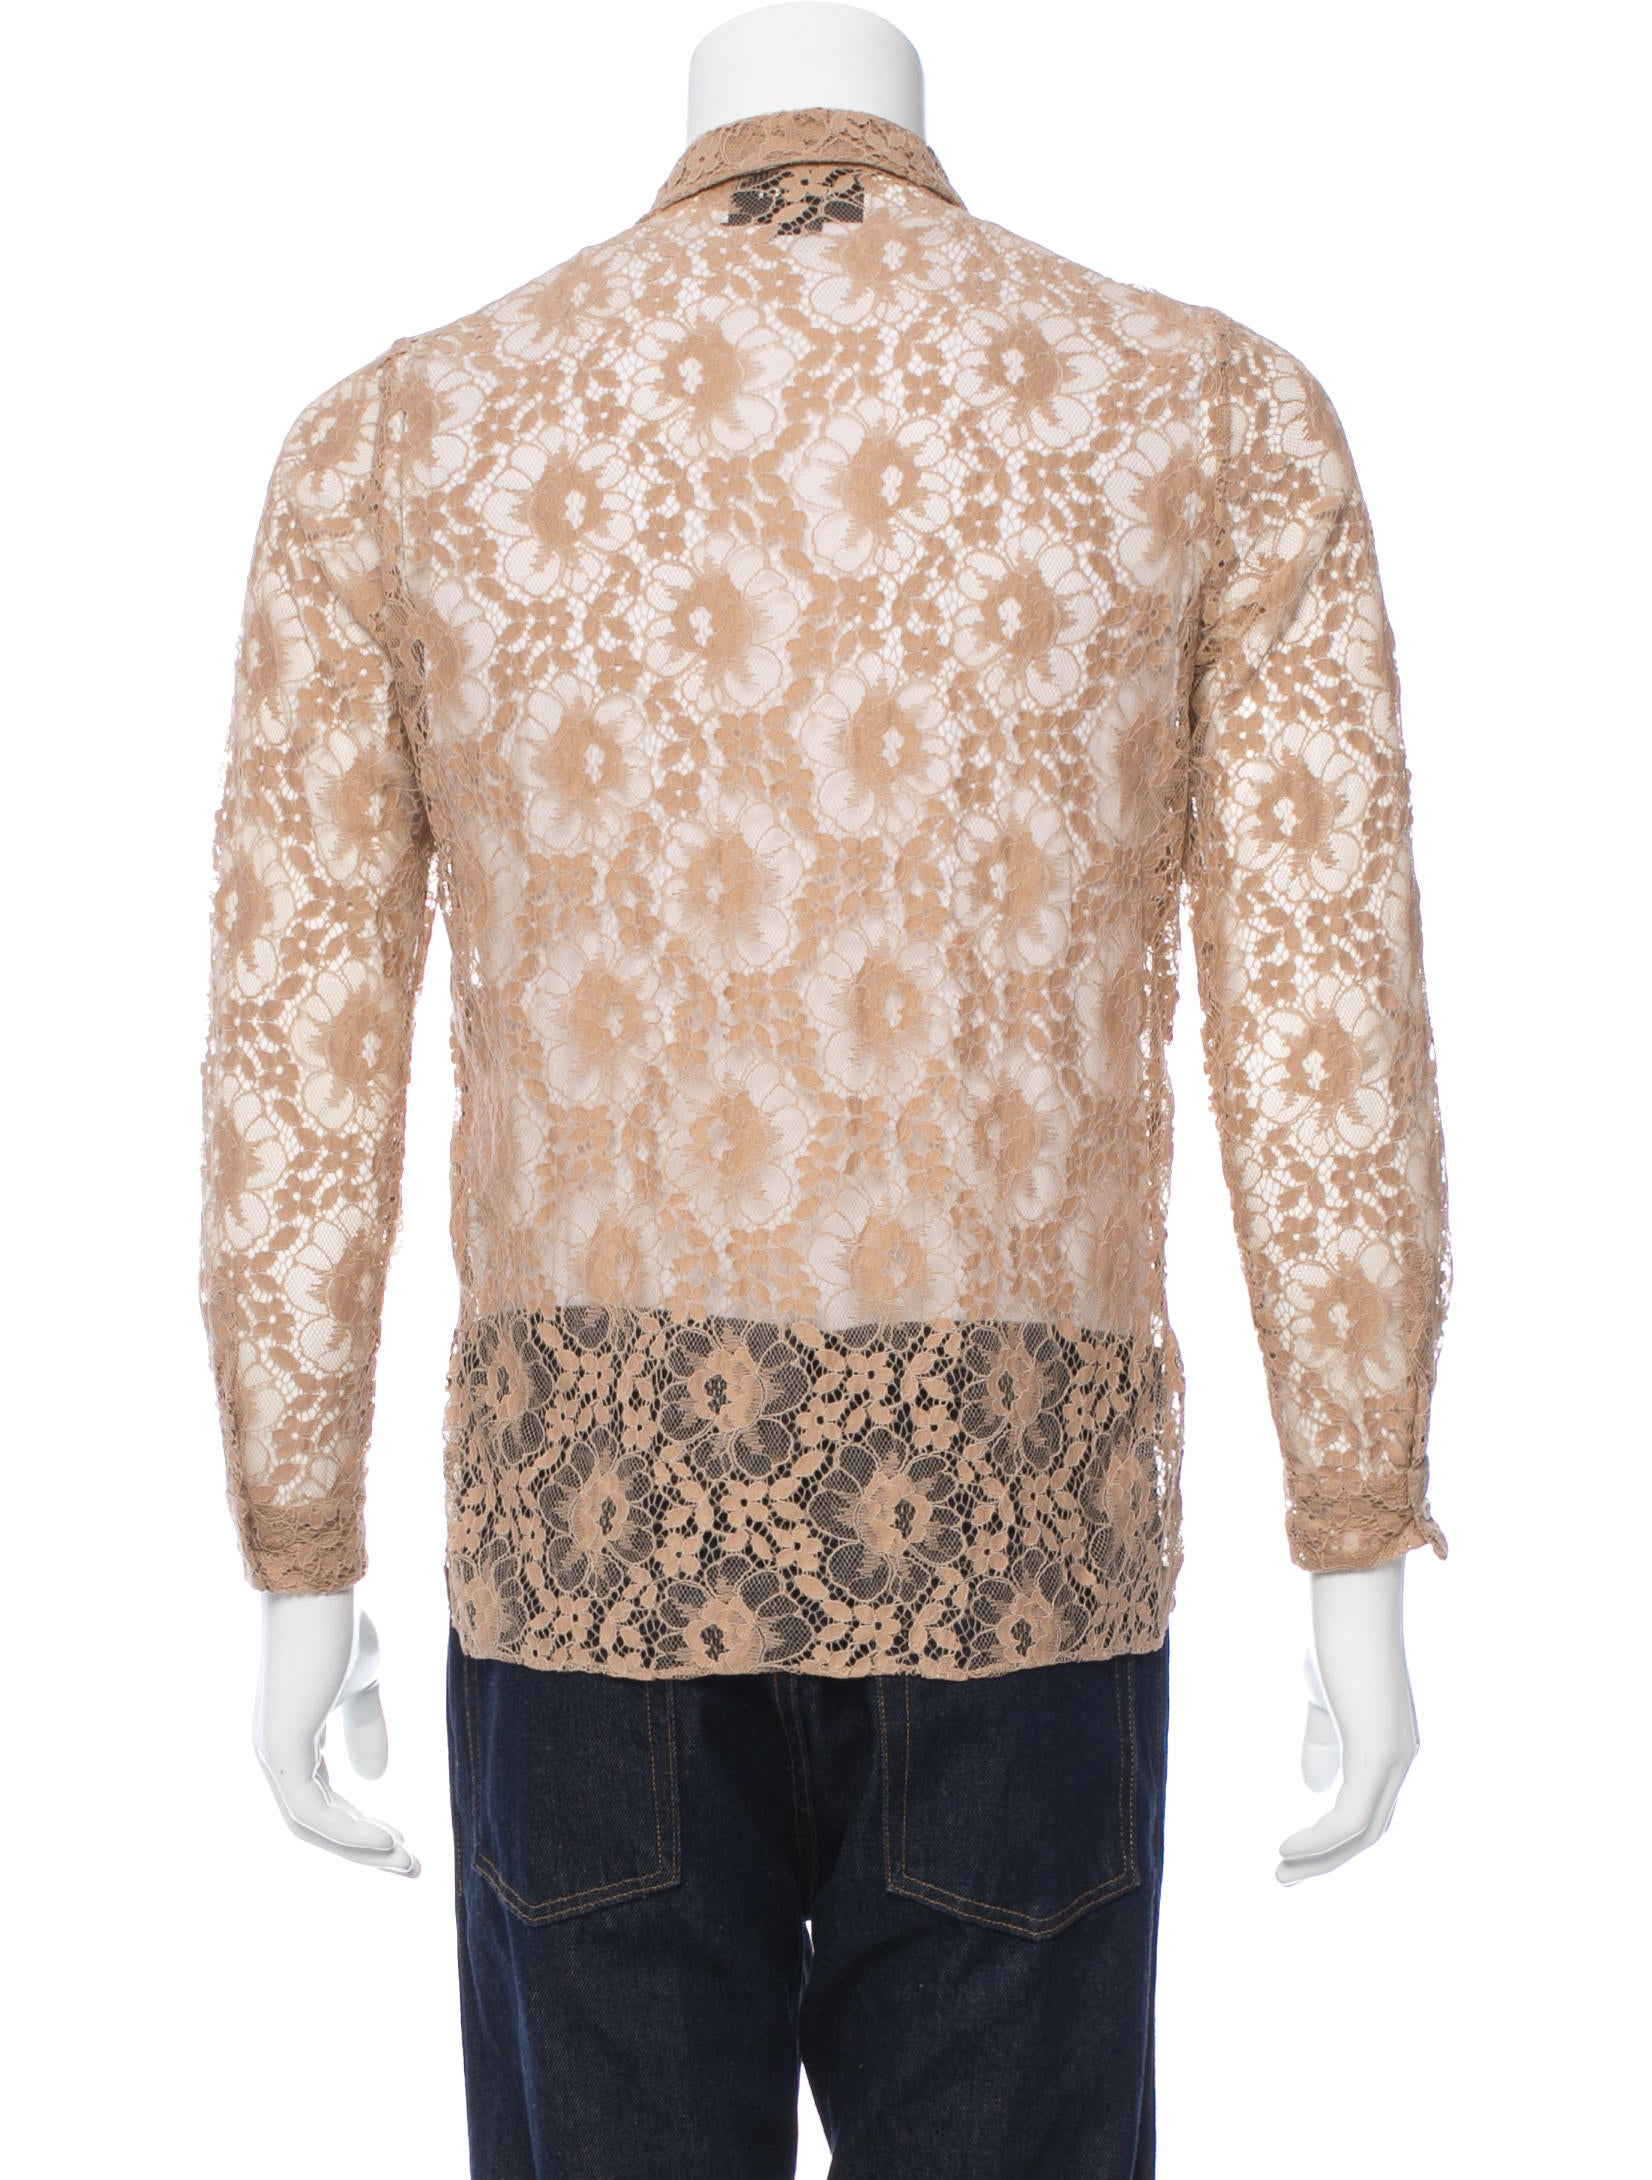 Gucci floral embroidered lace shirt clothing